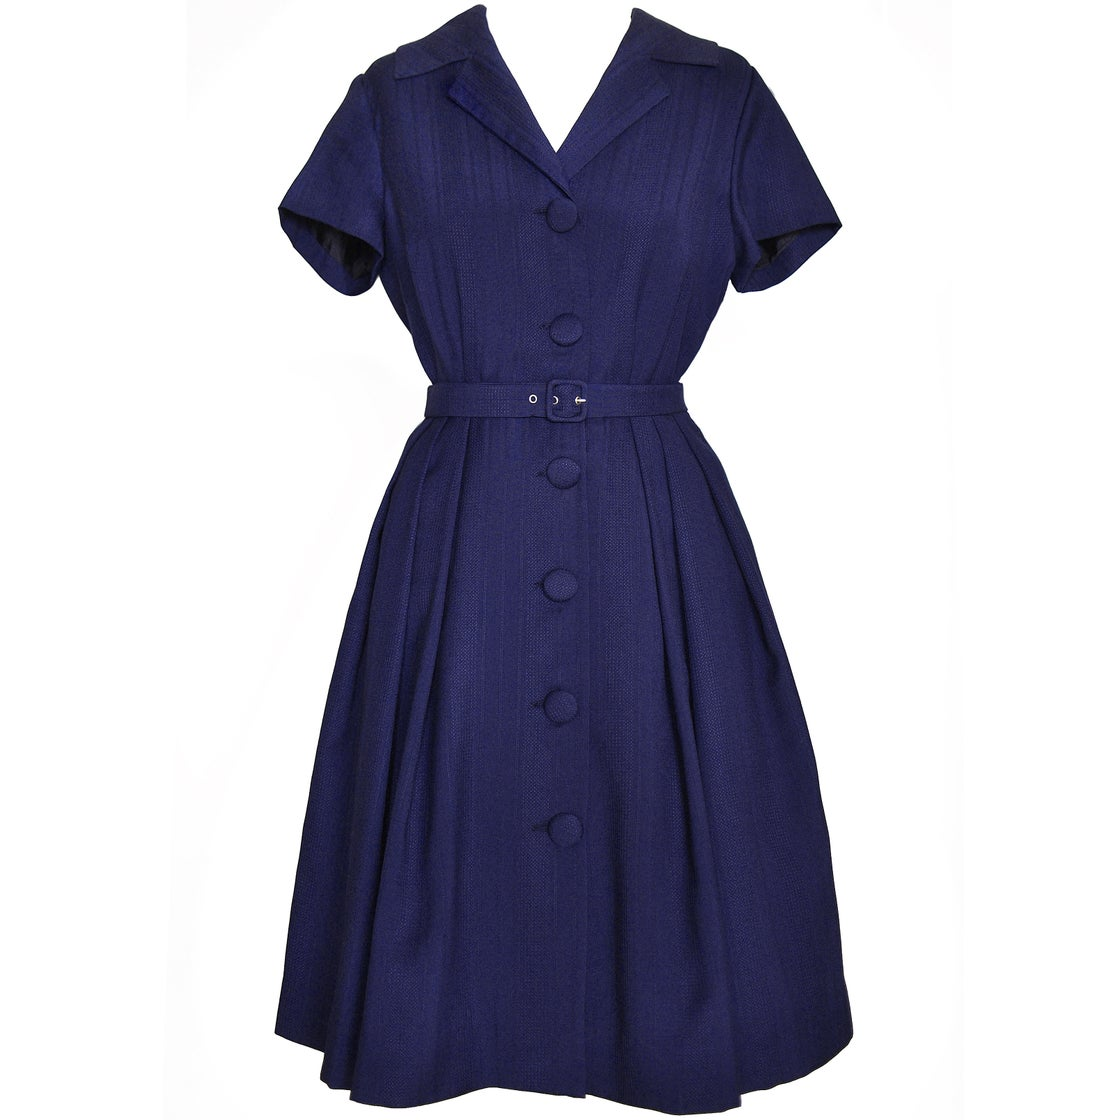 Image of 'Venezia' Shirtwaist Dress in Navy